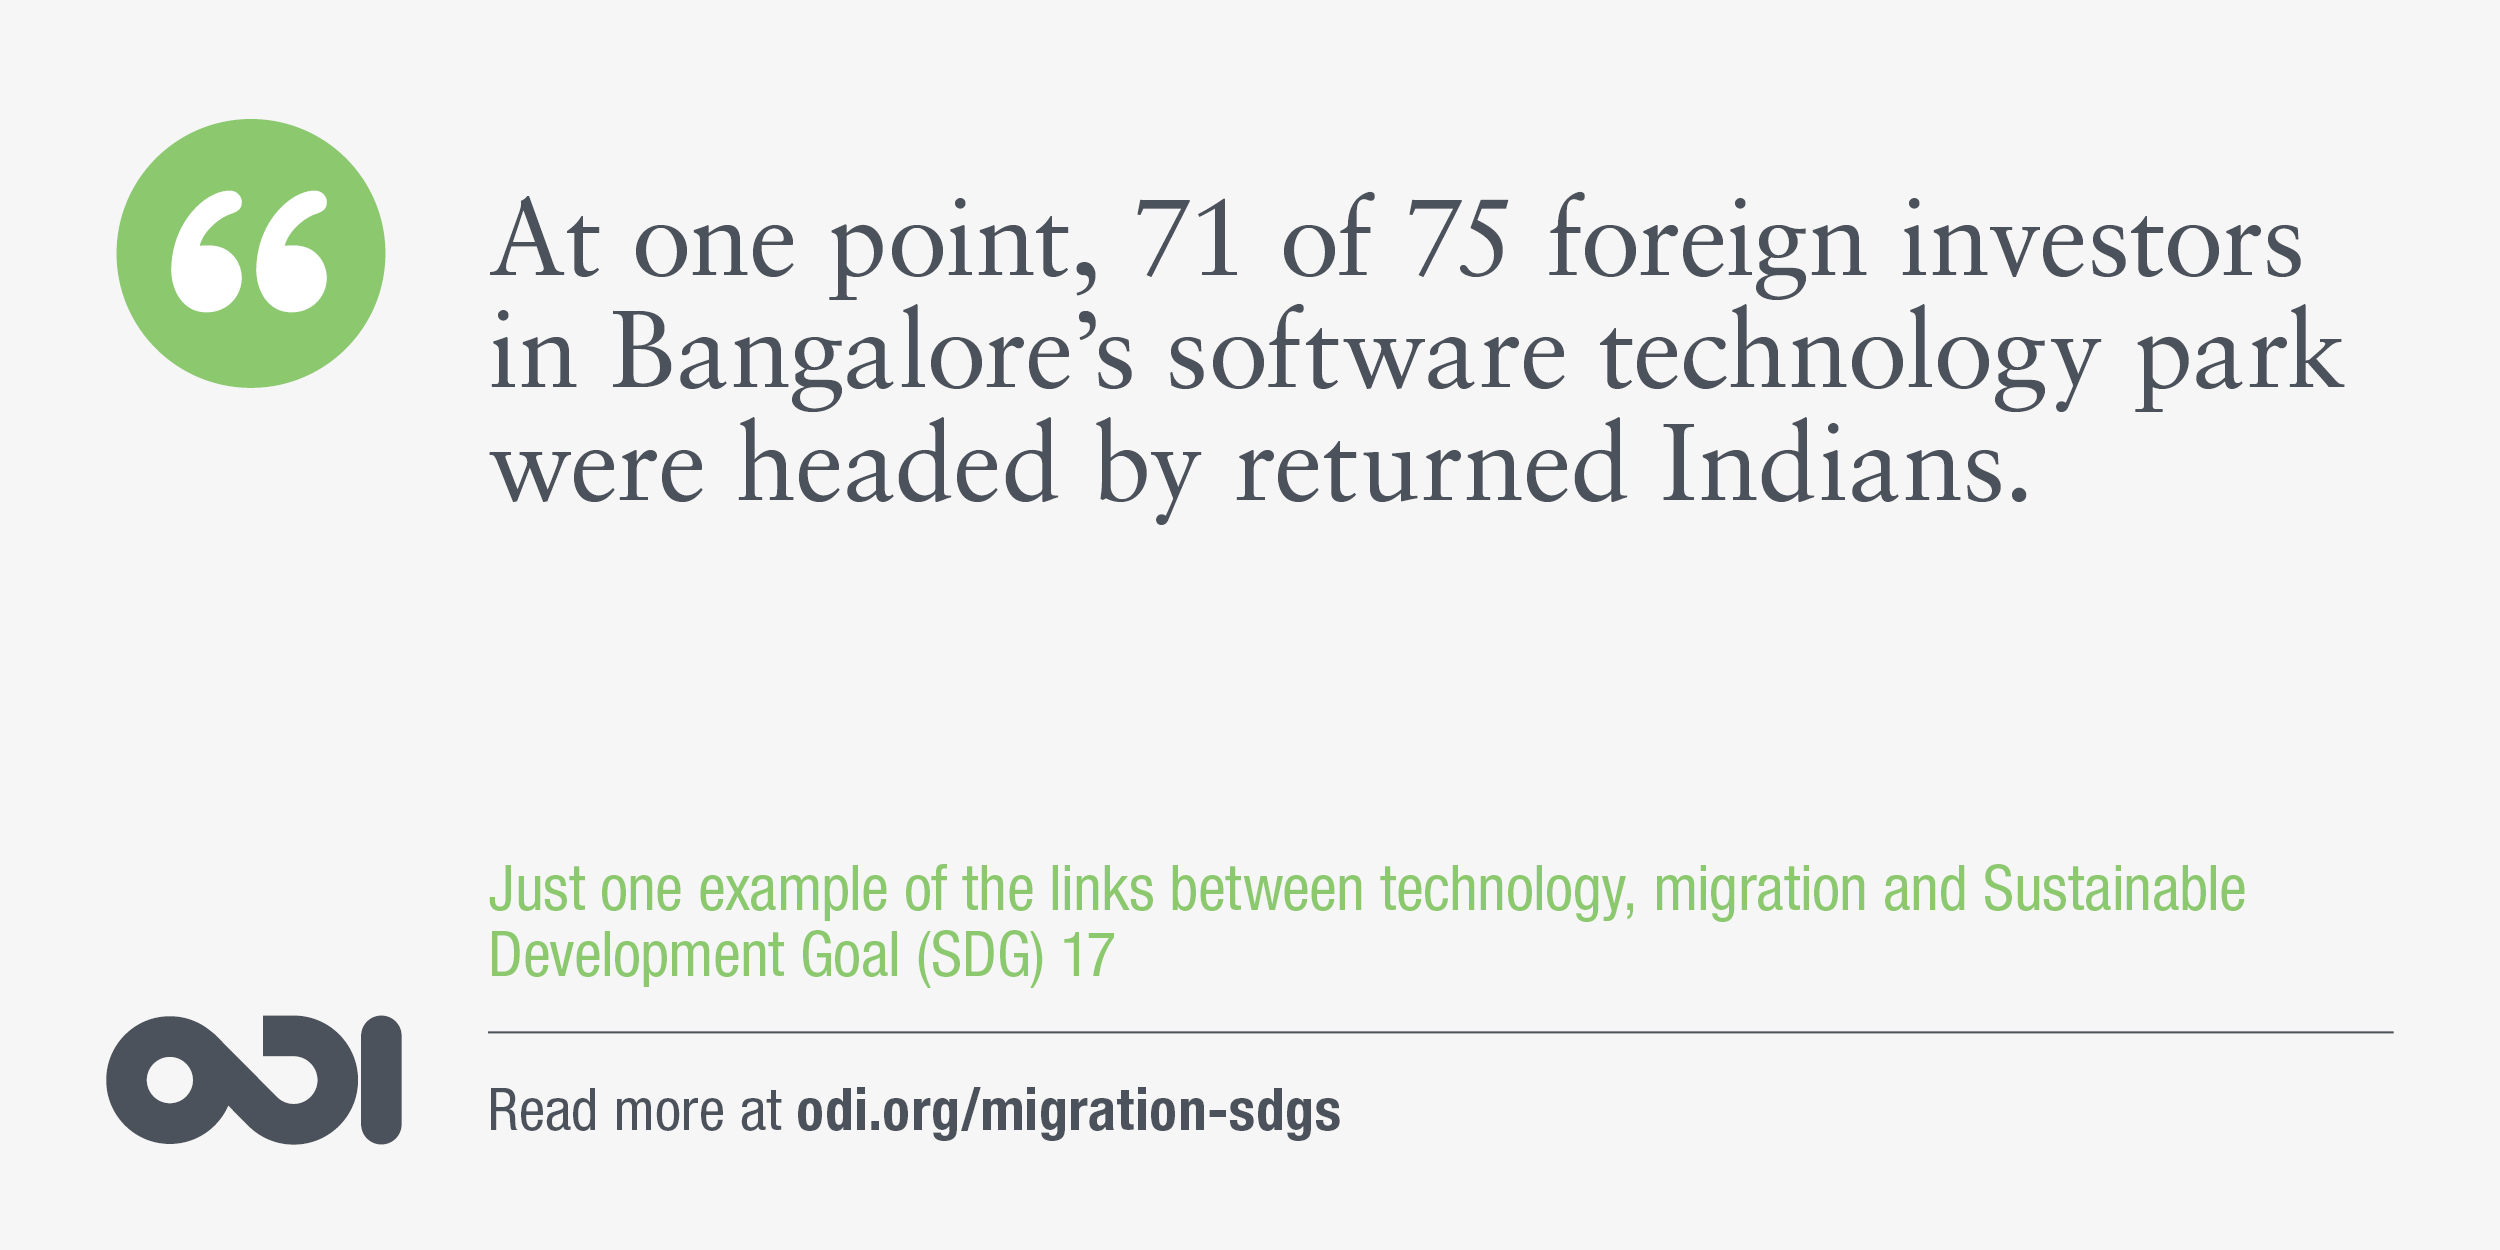 The links between technology, migration and SDG 17.